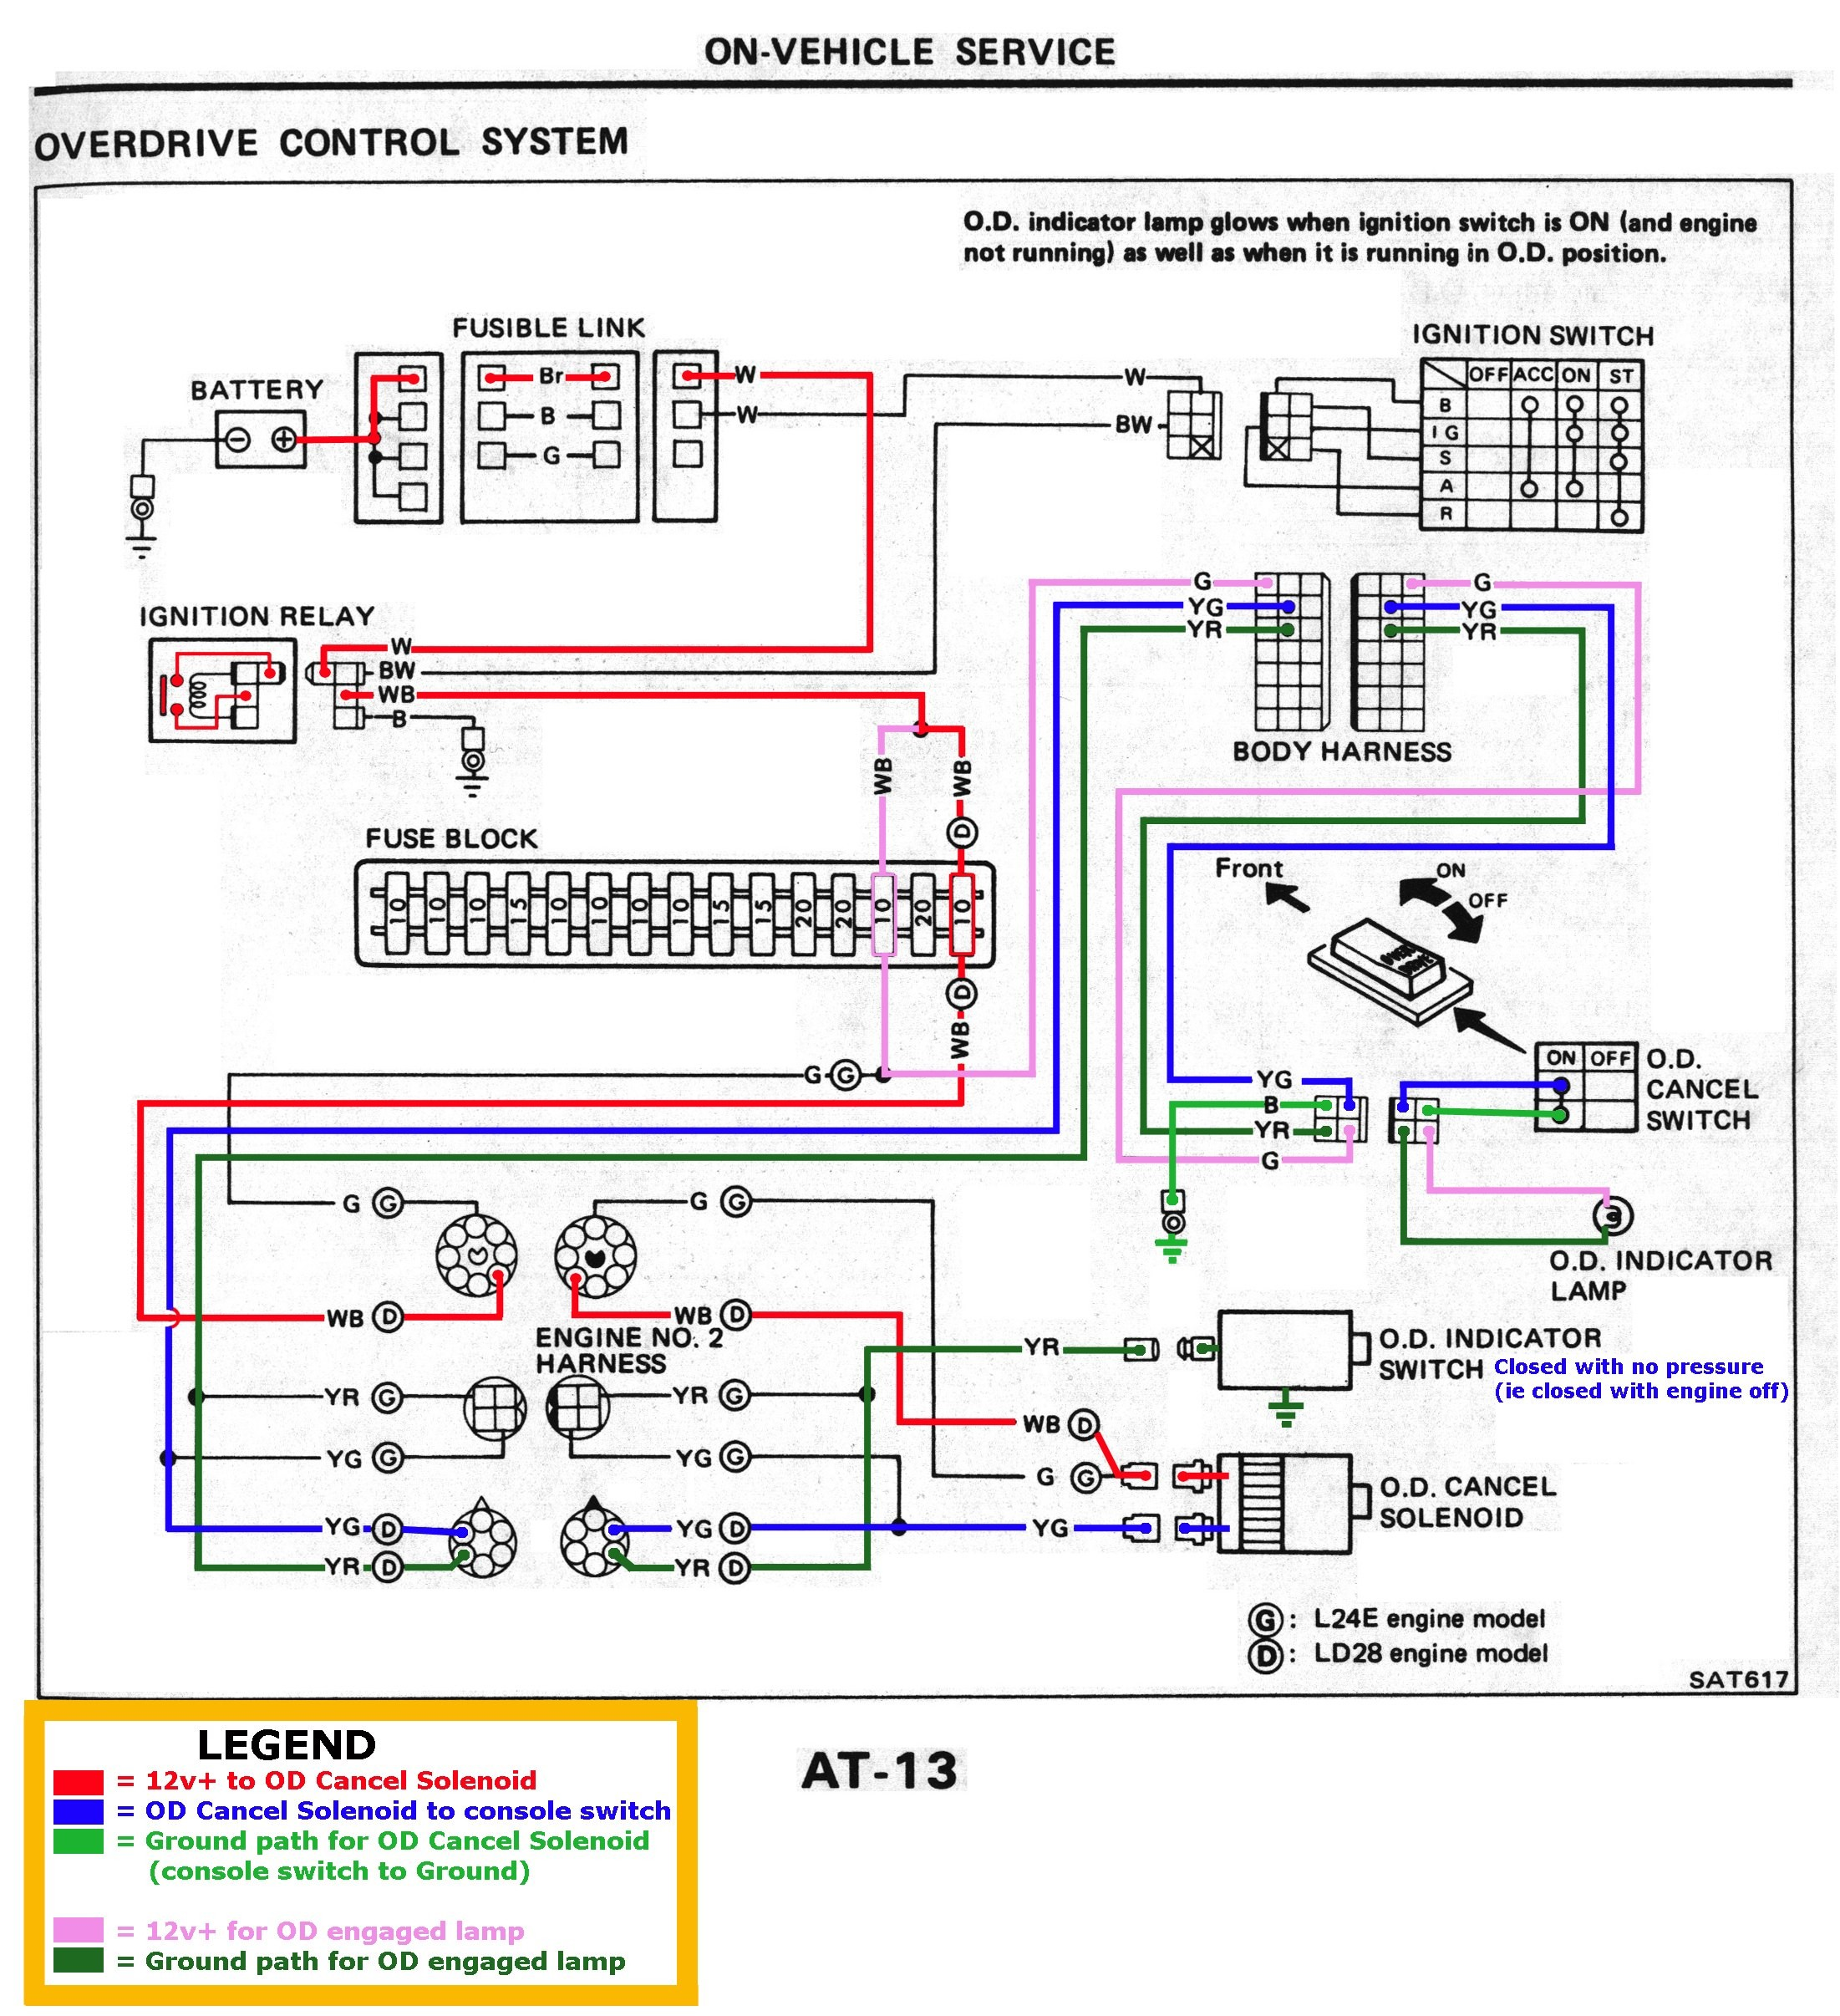 Diesel Engine Components Diagram Basic Diesel Engine Wiring Diagram – Wiring  Diagram Collection Of Diesel Engine